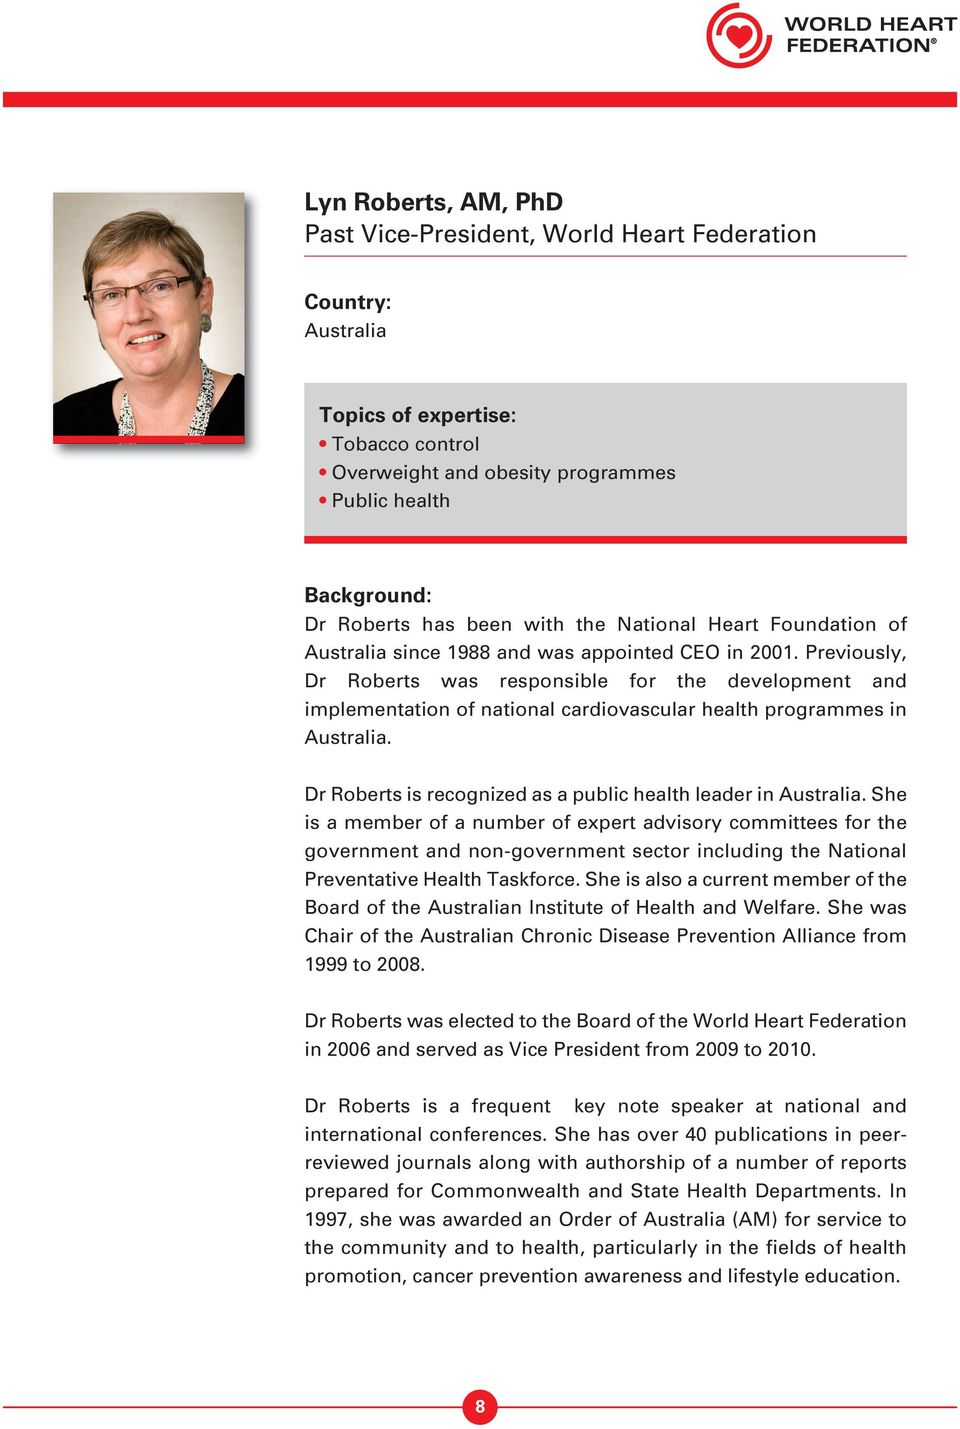 Dr Roberts is recognized as a public health leader in Australia.